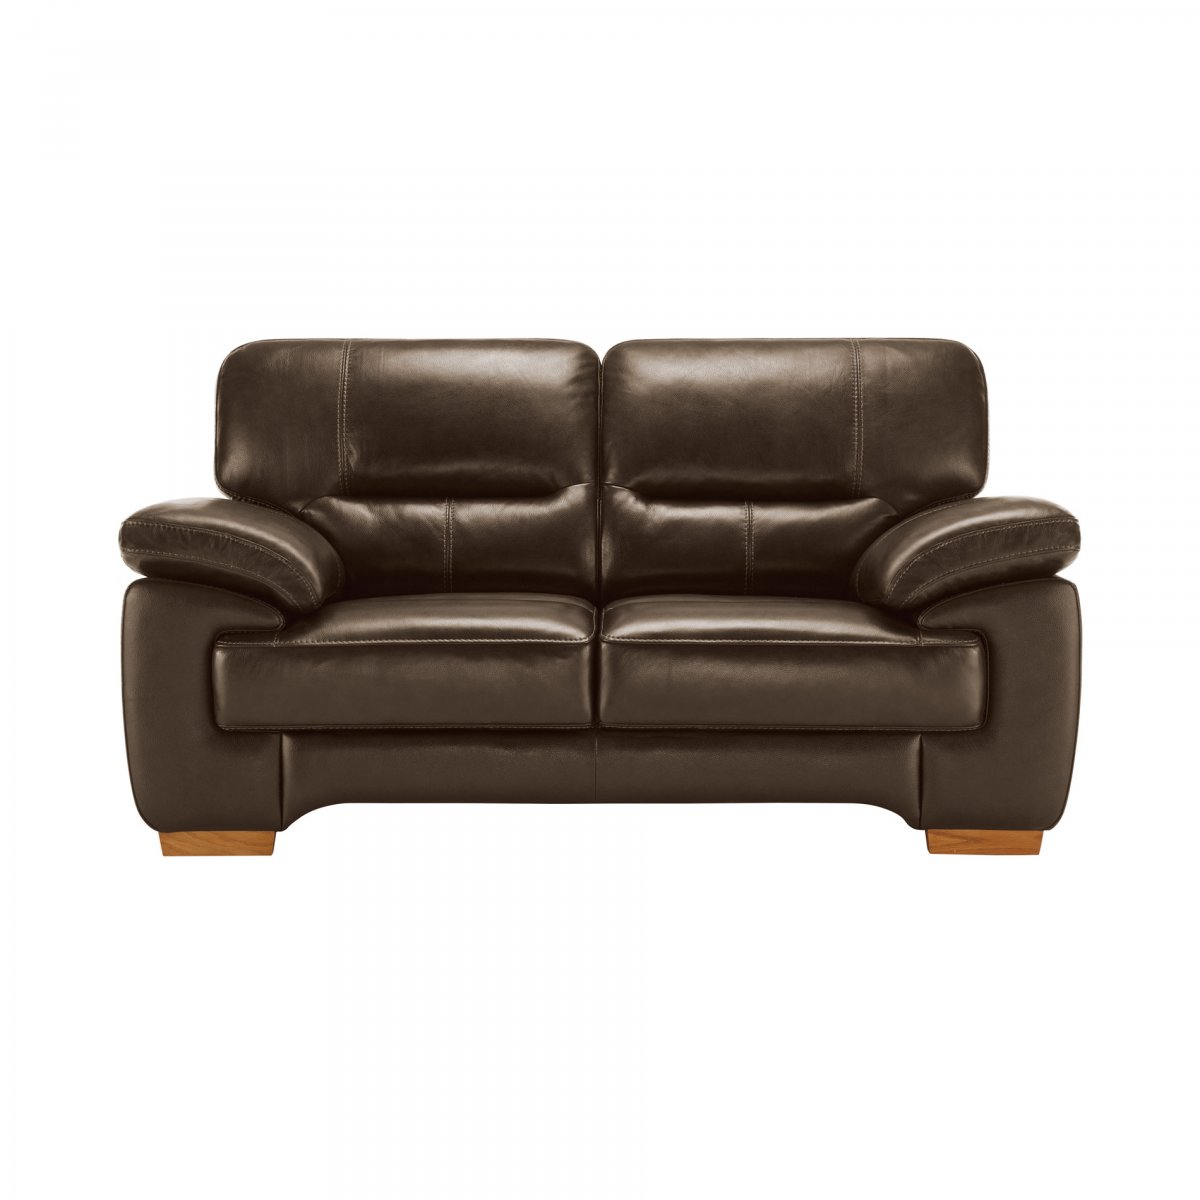 light brown leather reclining sofa bruhl ersatzbezug clayton 2 seater in oak